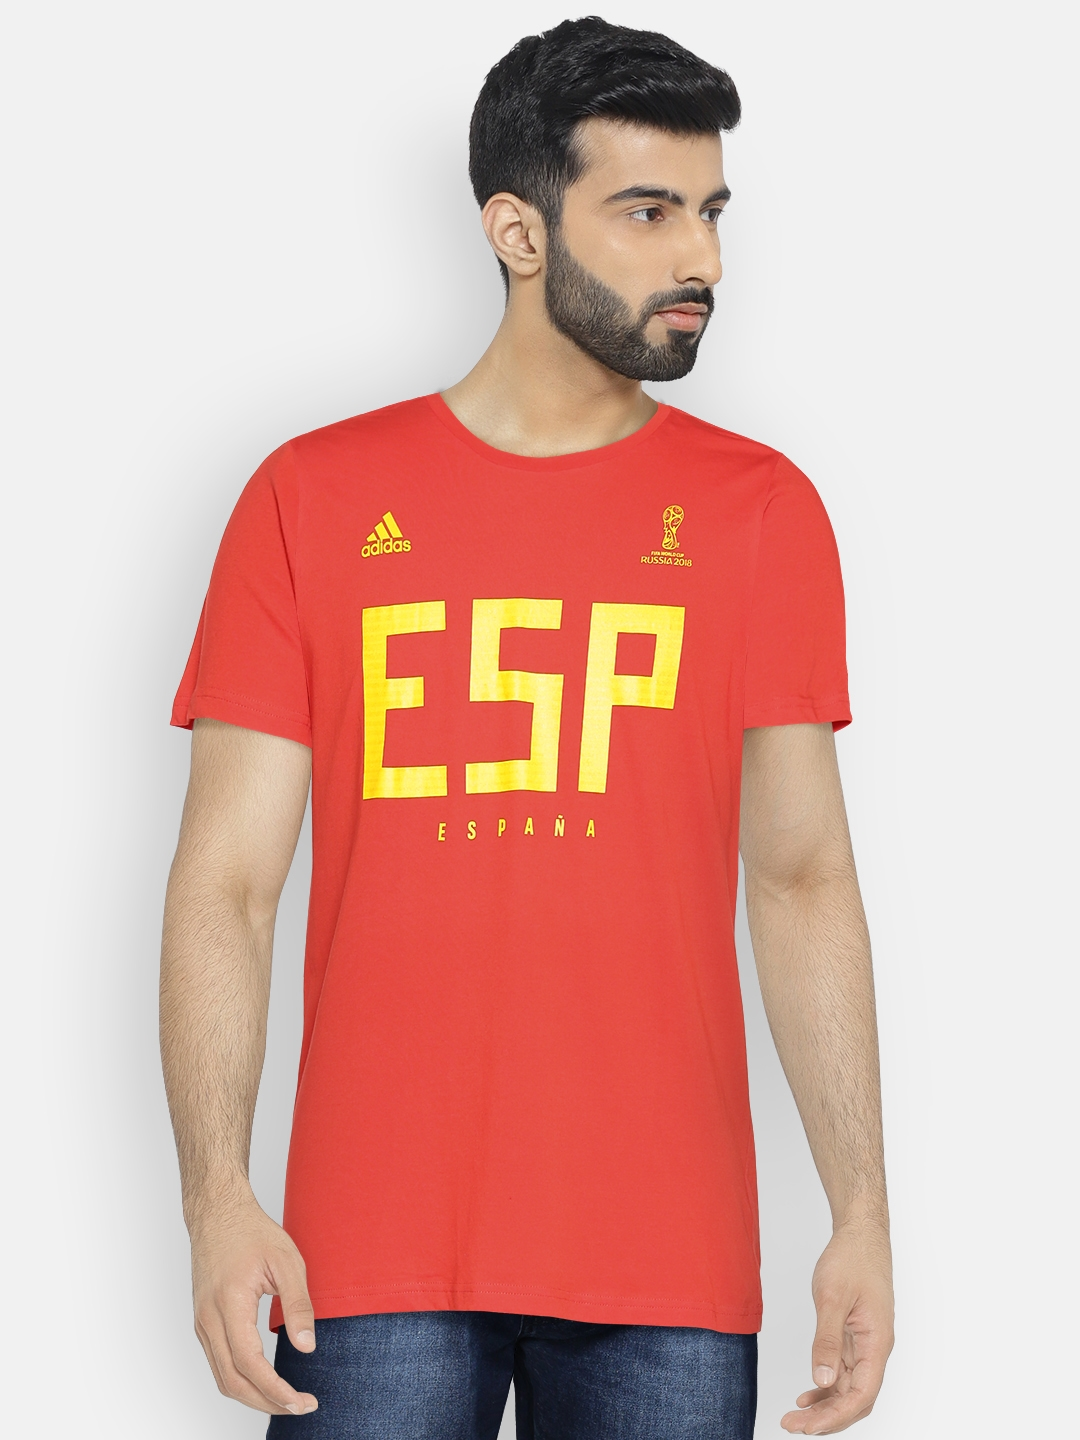 c02b384902b Buy ADIDAS Men Red Spain MNS Printed Football T Shirt - Tshirts for ...